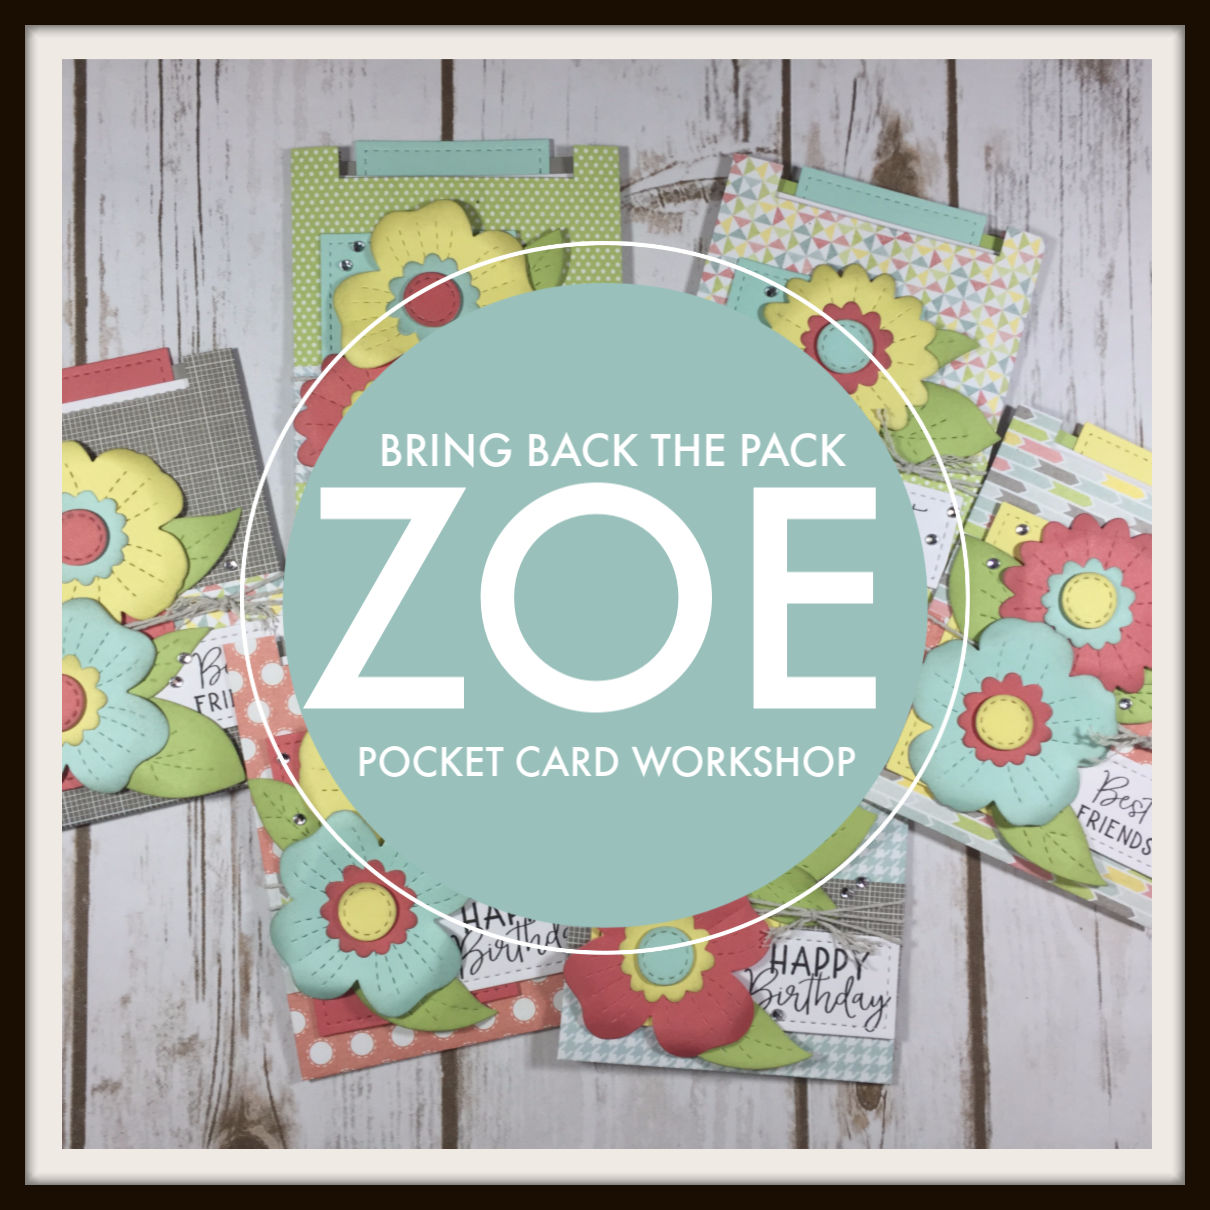 Zoe-Bring Back the Pack Cardmaking Workshop